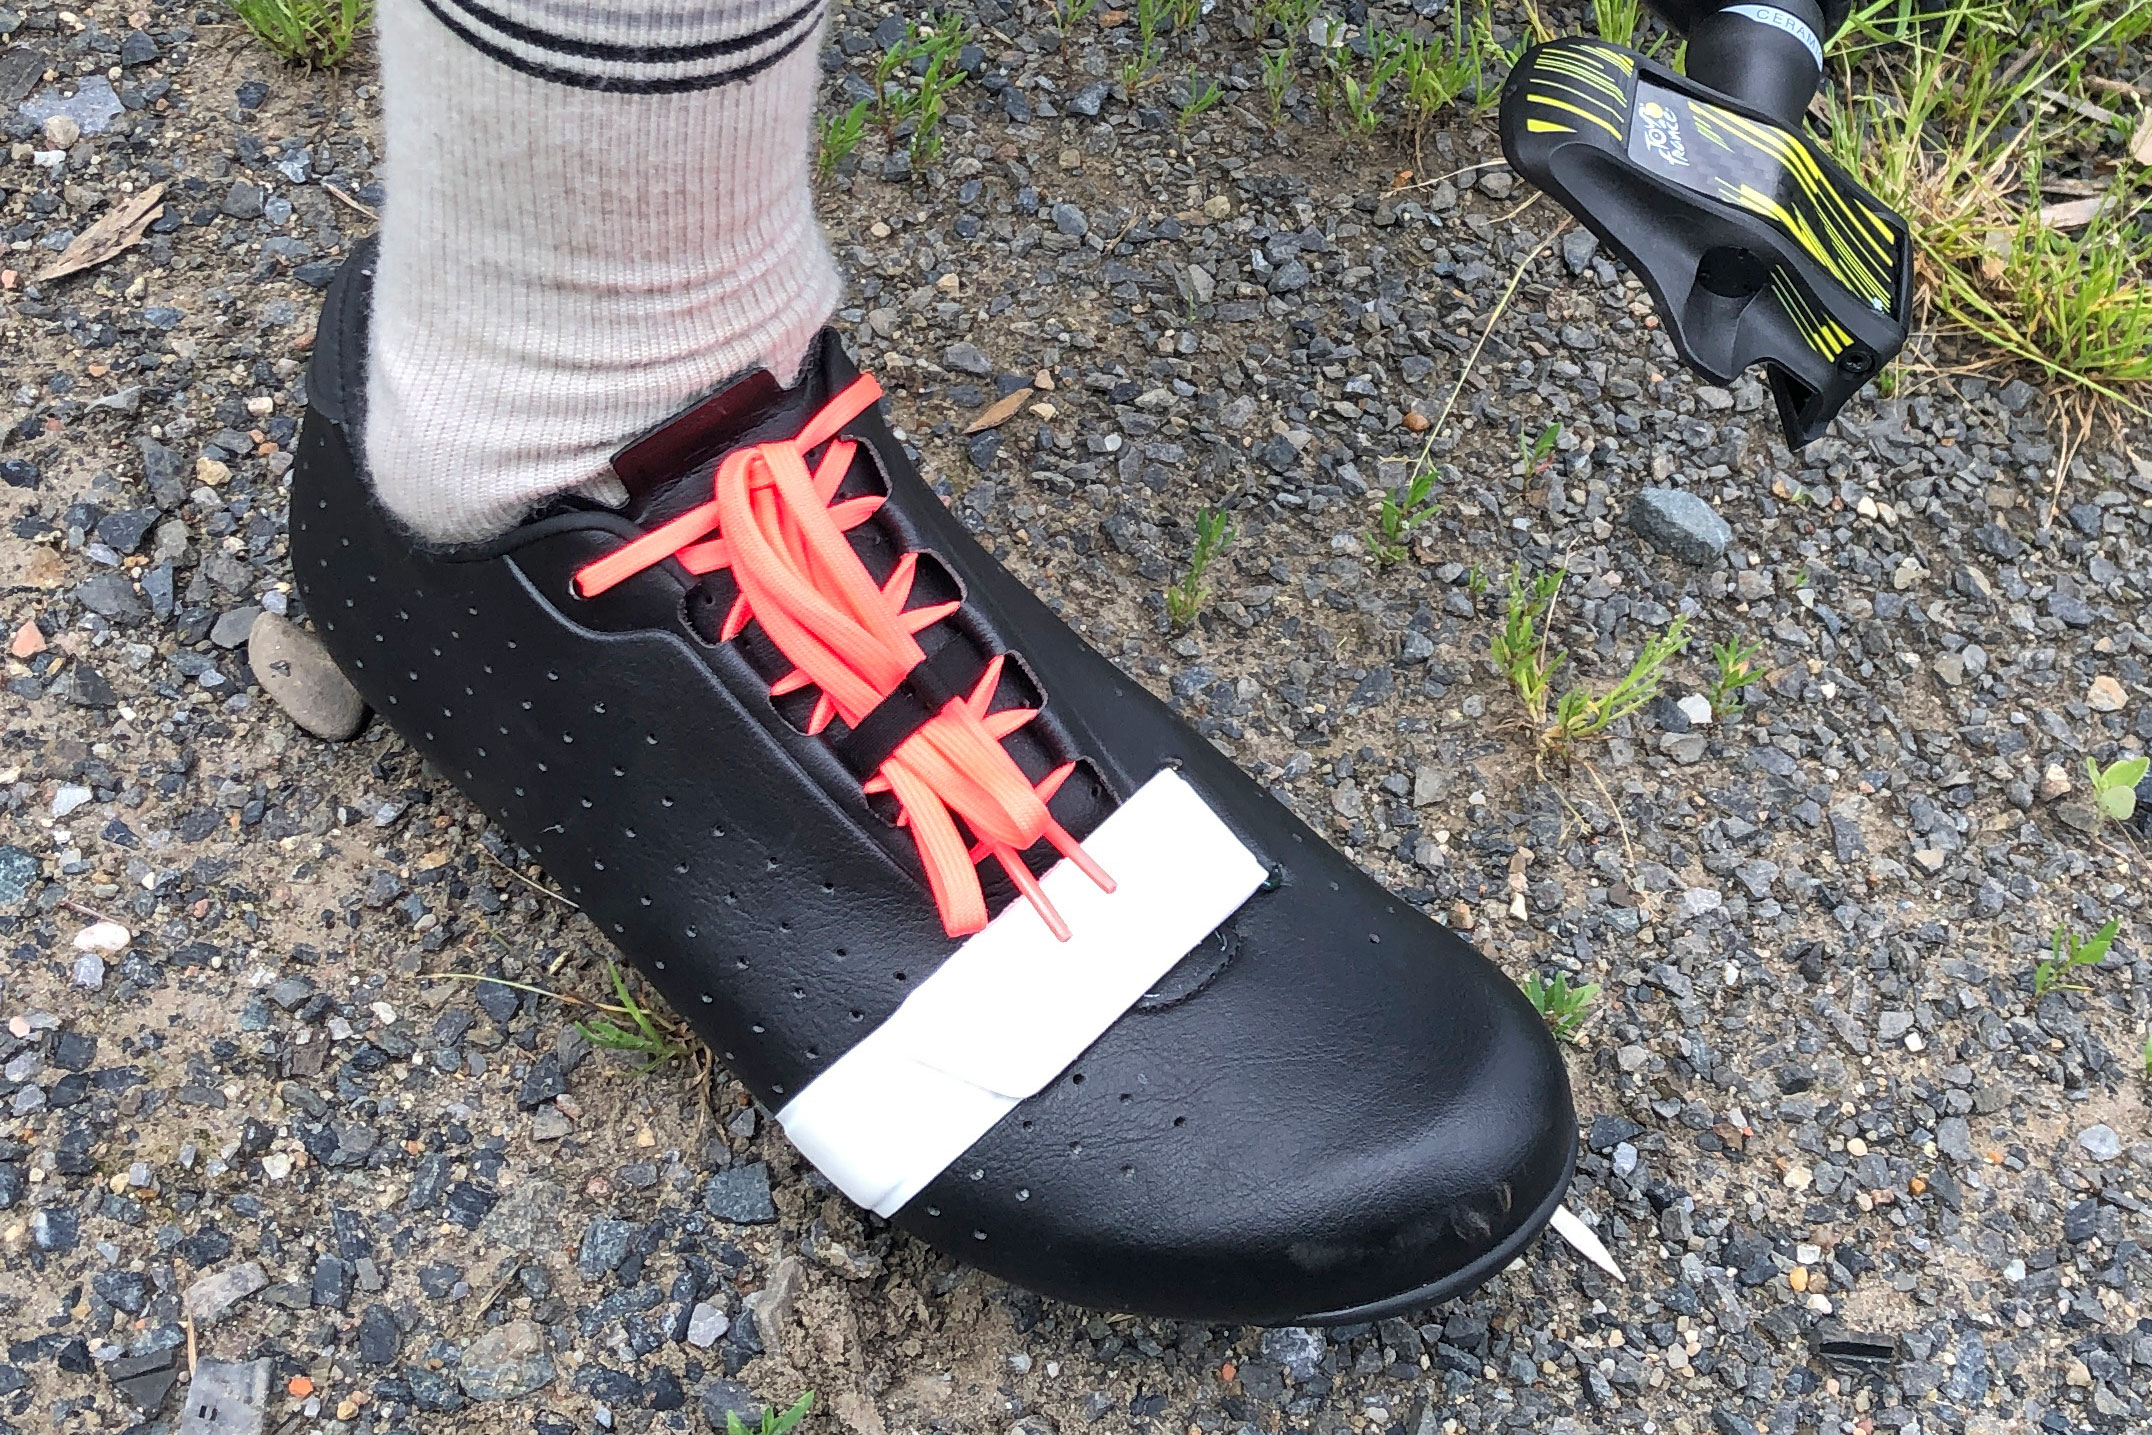 Rapha Classic shoes, carbon-soled road & light gravel bike riding shoes